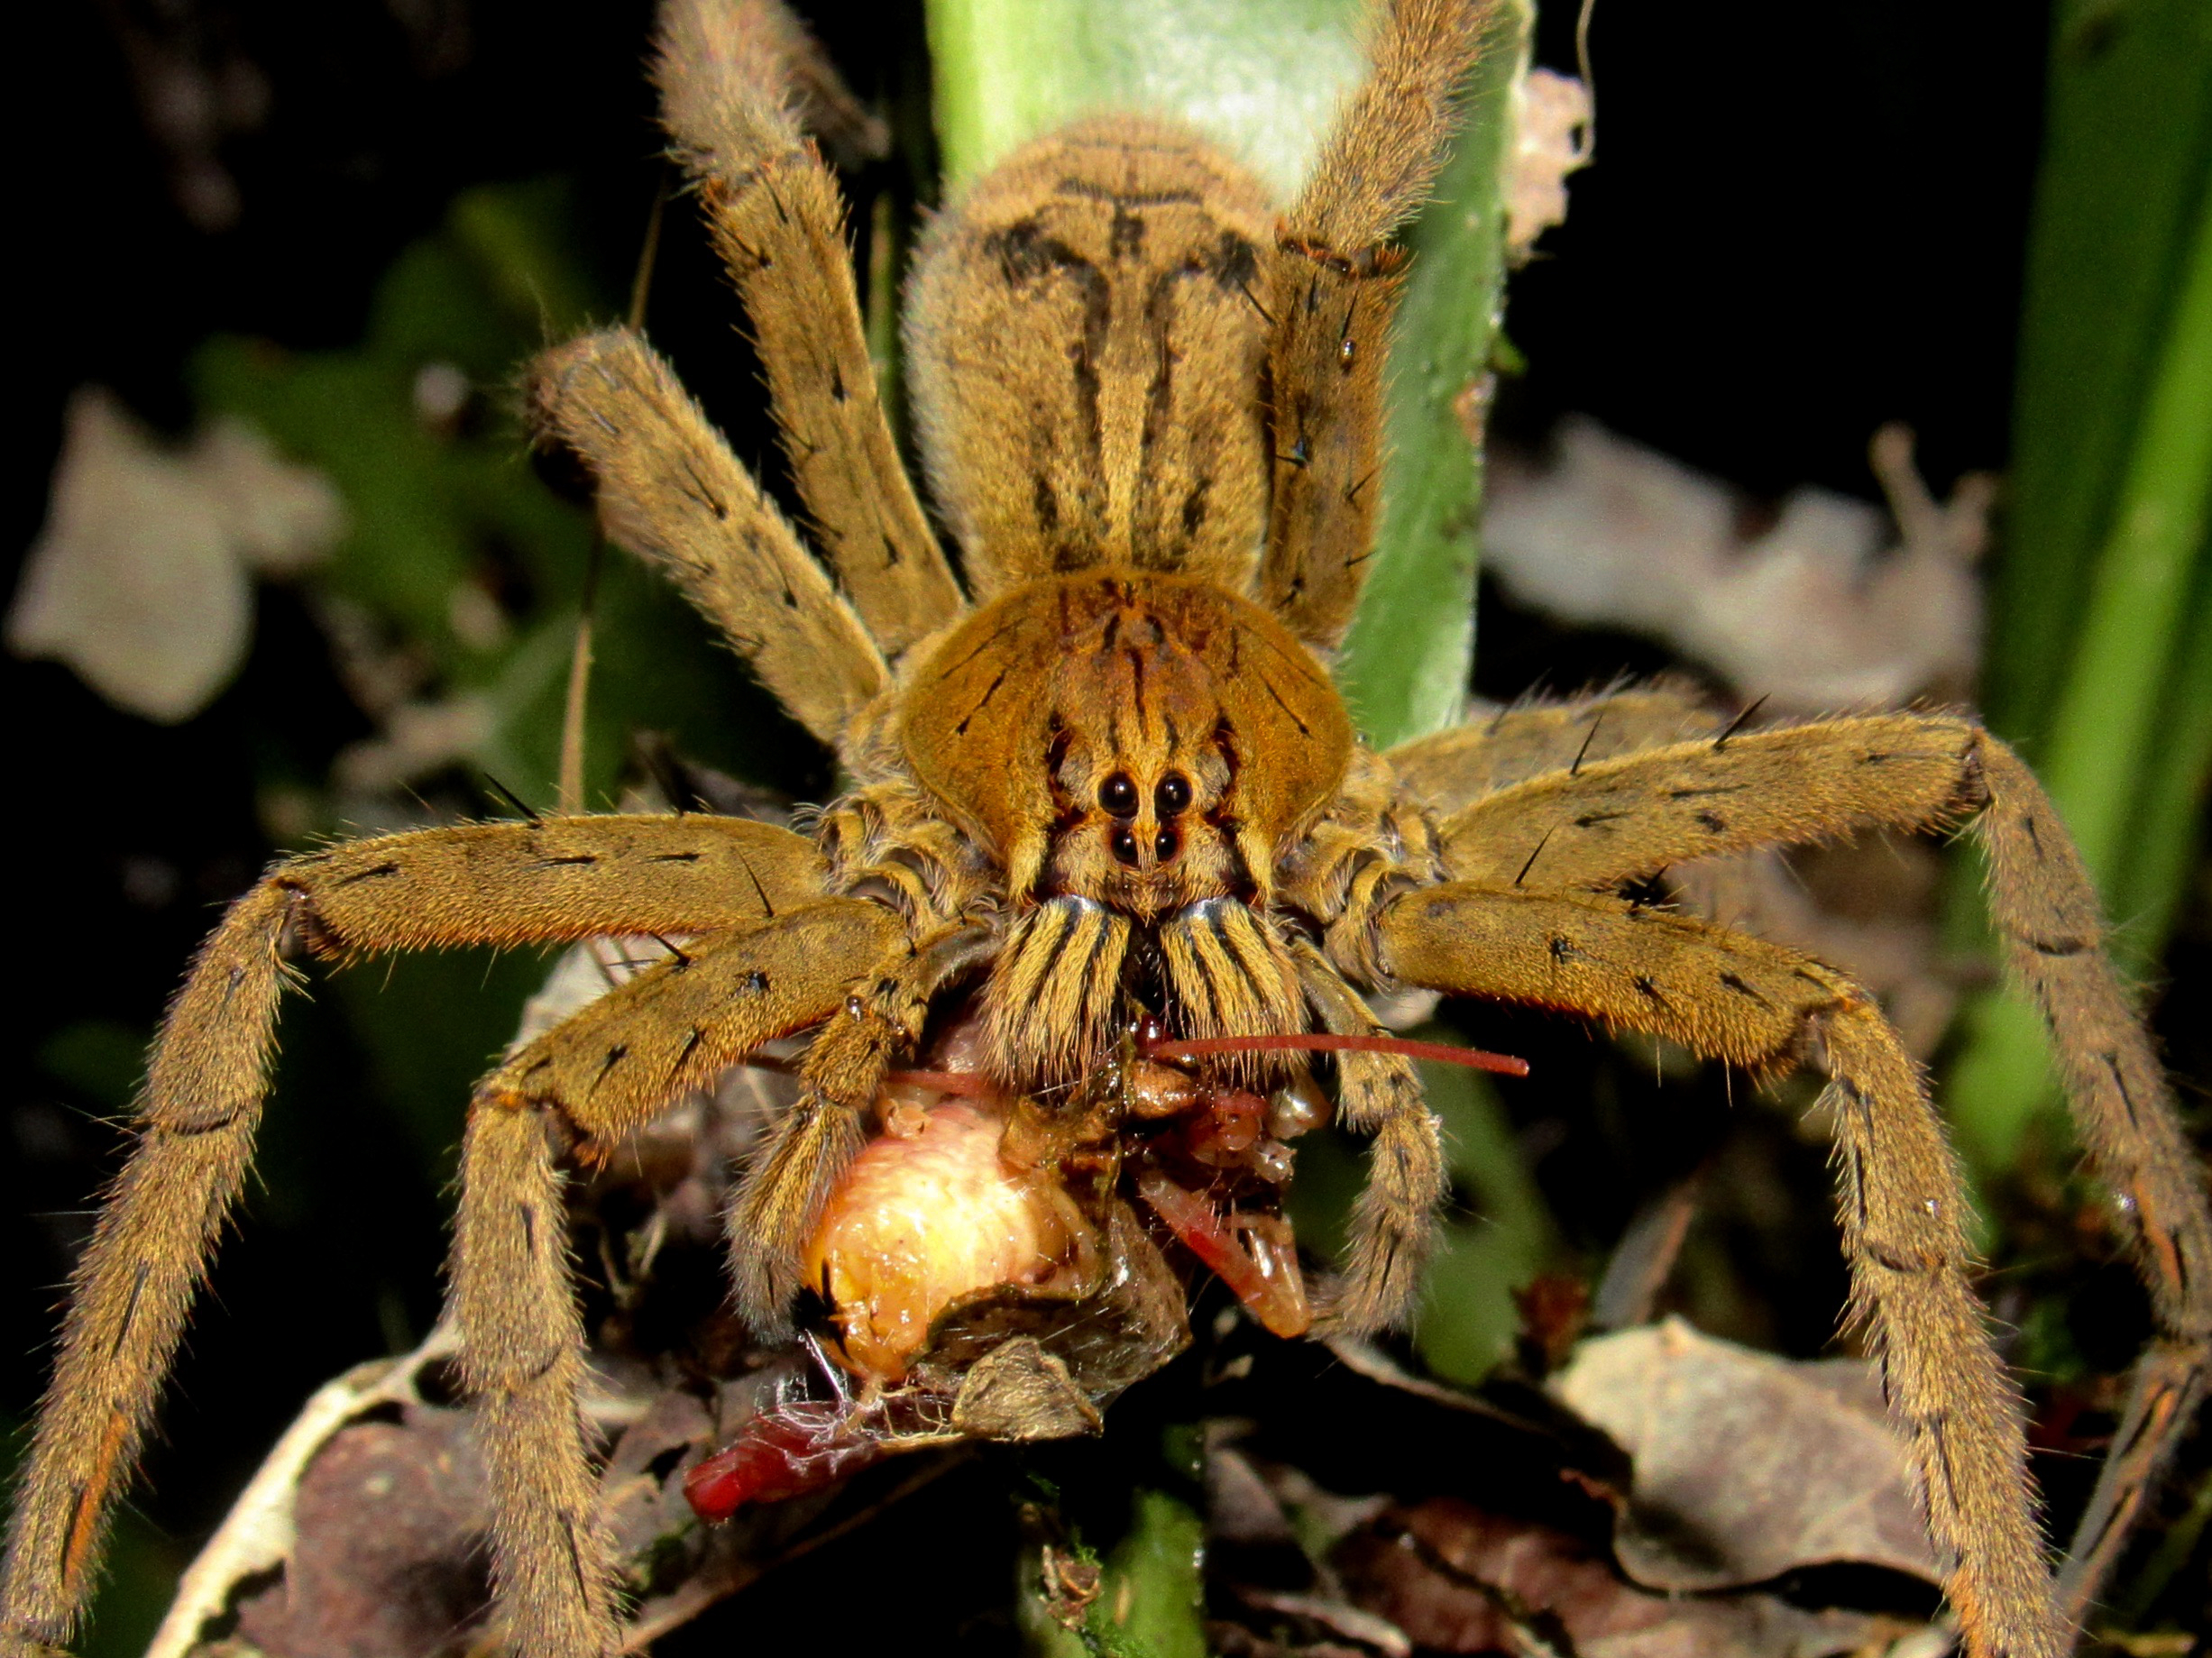 Red-legged wandering spider (Cupiennius coccineus) eating a pink katydid (Tettigoniidae: Phaneropterinae) at La Selva Biological Station, Costa Rica